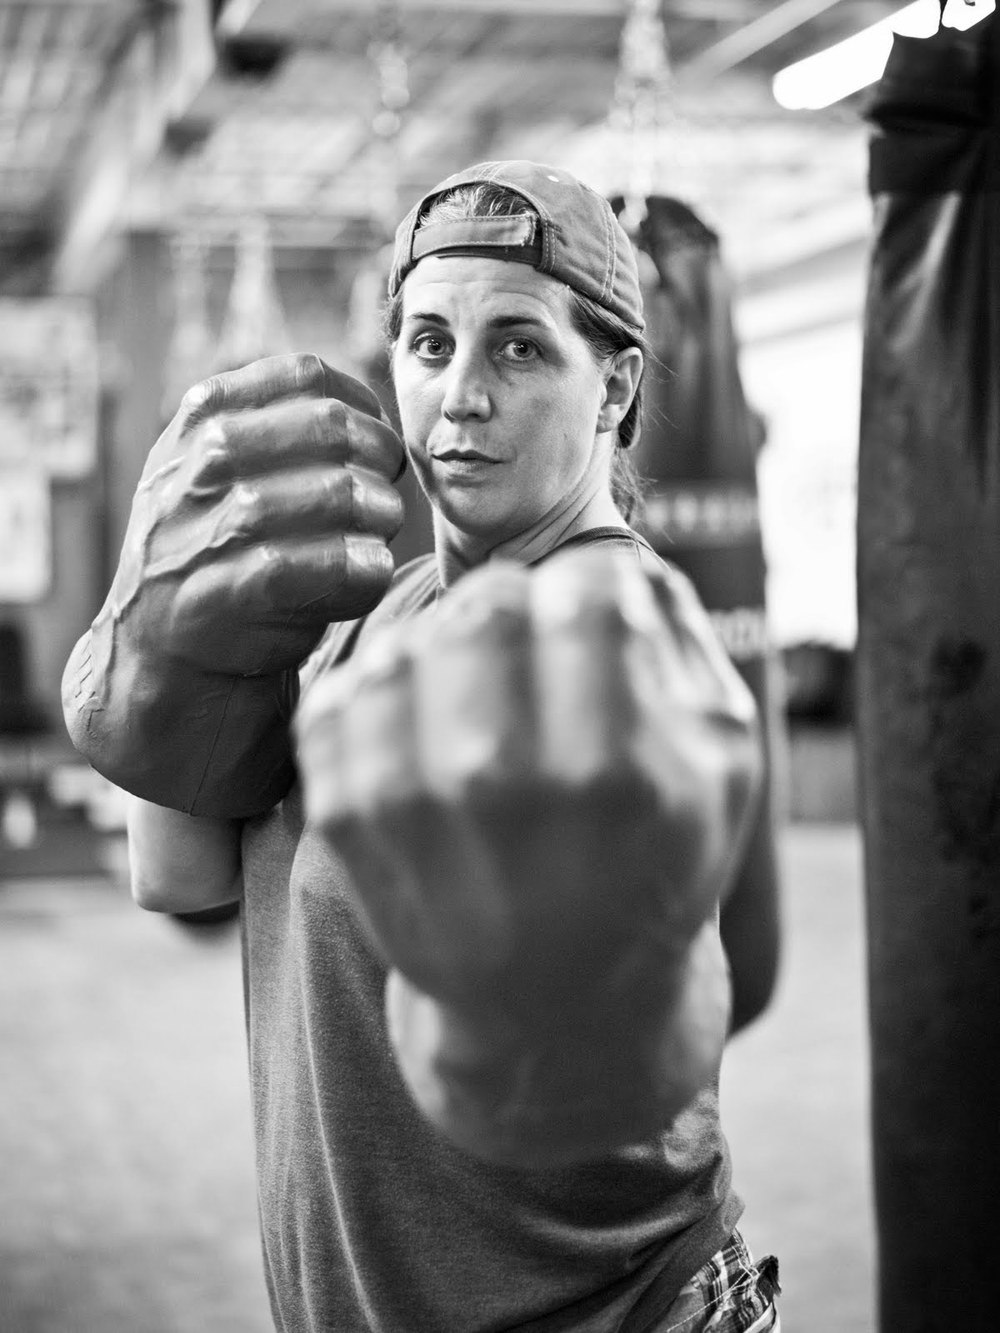 In 1993, Toronto based Savoy Howe participated in the city's first ever female boxing event.  Howe made headlines that same when she became the first out lesbian in women's boxing.  Howe started the Toronto Newsgirls Boxing Club in 1996 to introduce women to competitive boxing.  A role model in the LGBT community, she promotes the sport as an outlet for lesbians and transgendered people to receive support and feel empowered.  Howe currently operates the only all-female gym in Canada.